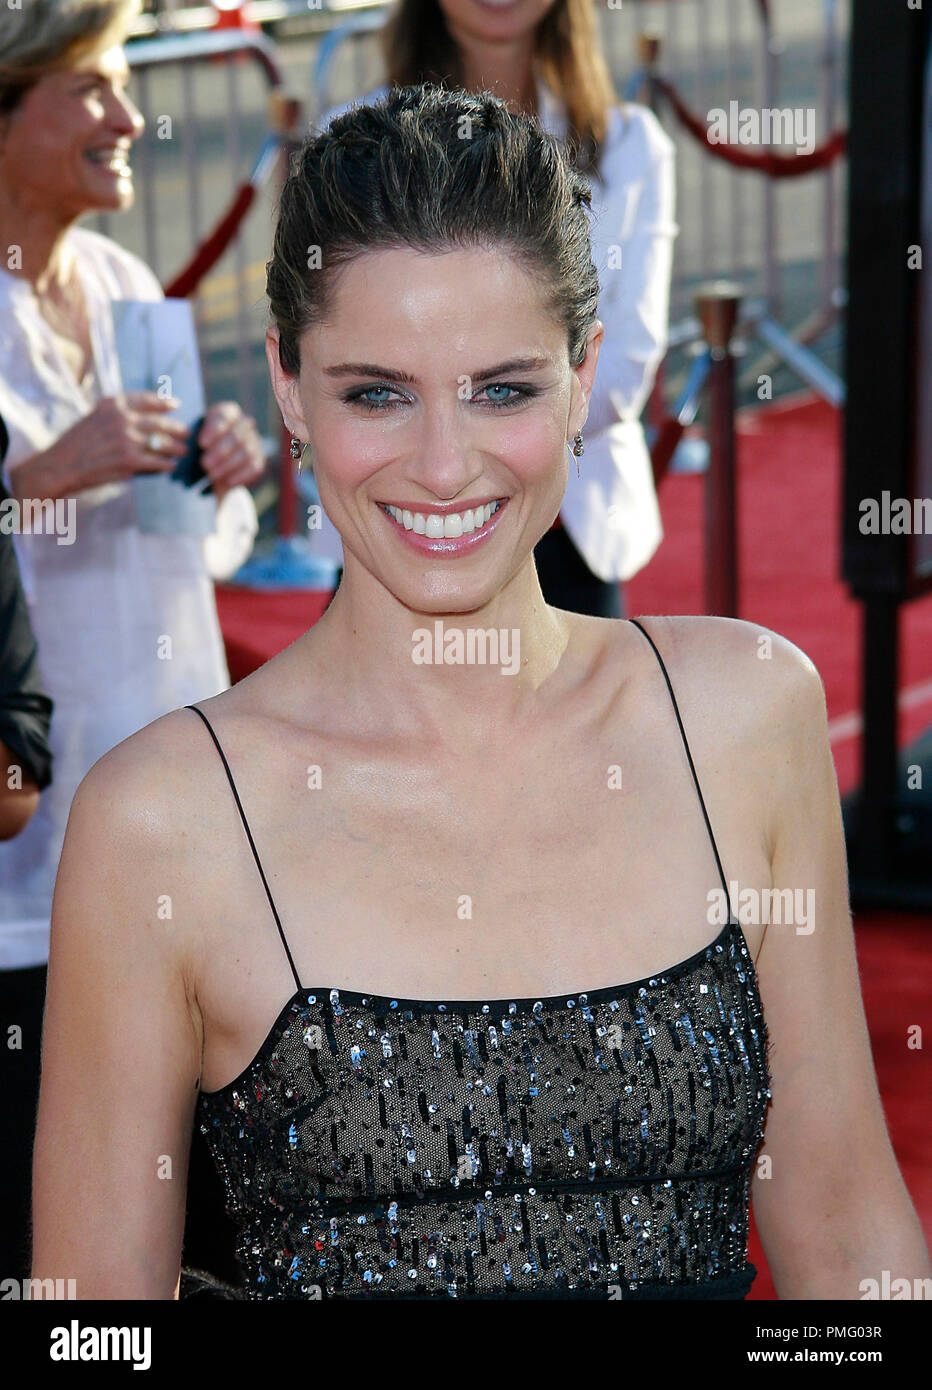 The X-Files: I Want to Believe Premiere  Amanda Peet  7-23-2008 / Mann's Grauman Chinese Theatre / Hollywood, CA / 20th Century Fox / Photo © Joseph Martinez / Picturelux  File Reference # 23571_0069JM   For Editorial Use Only -  All Rights Reserved - Stock Image